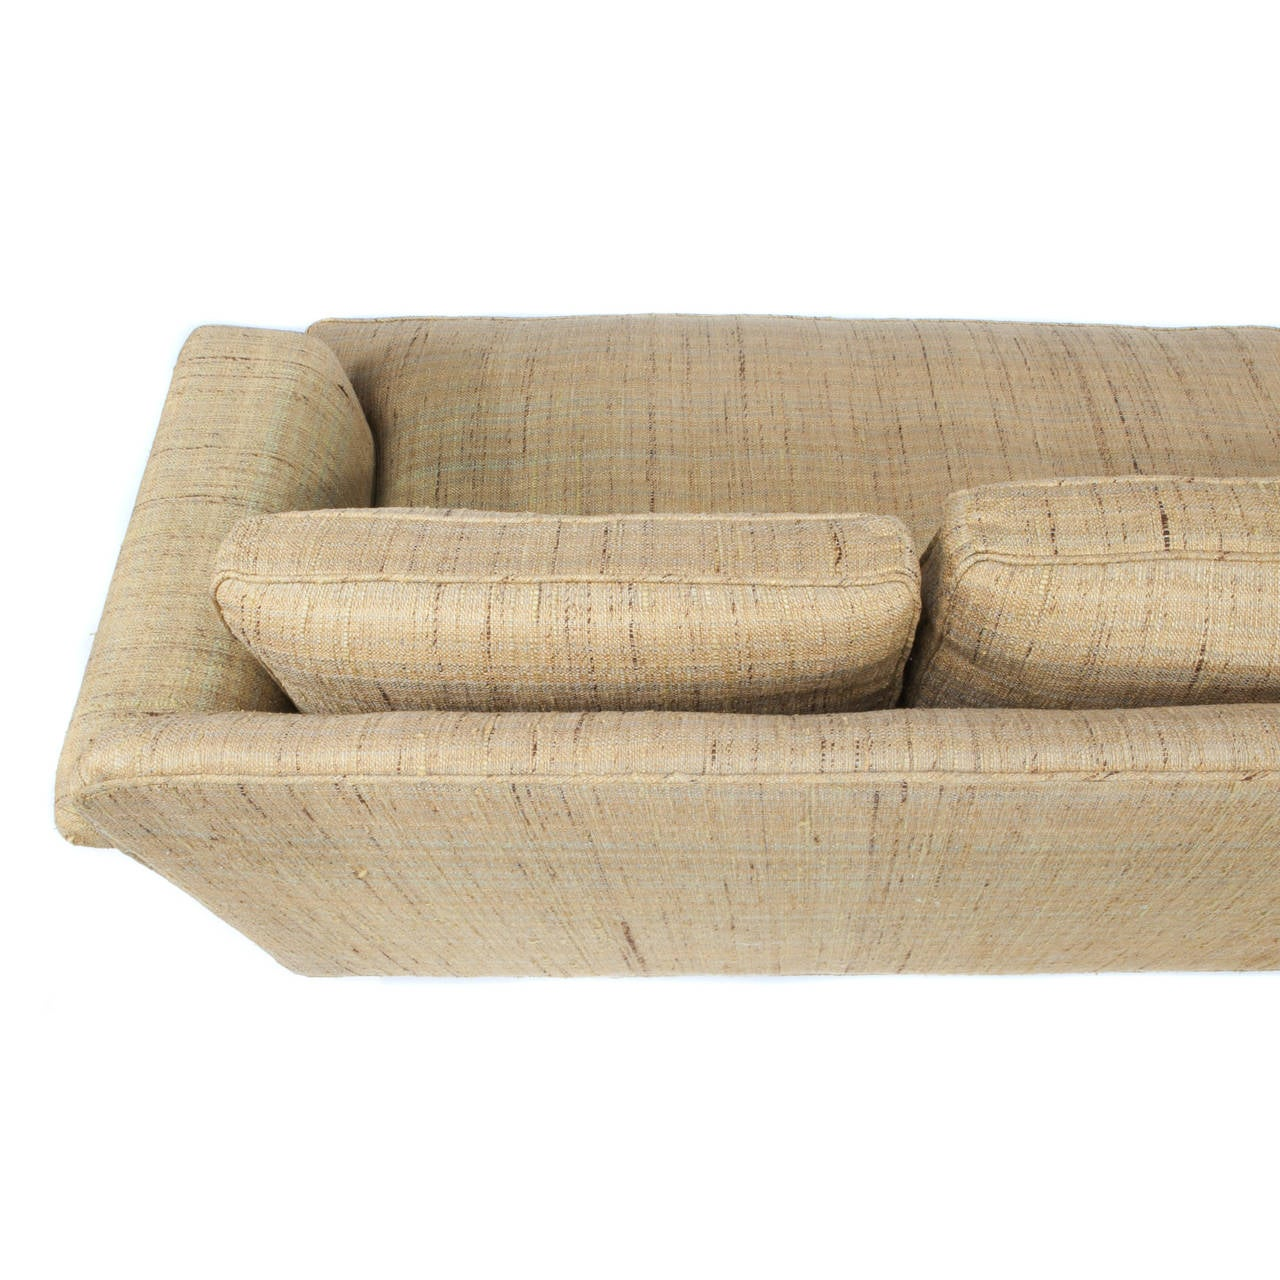 1950s Four-Seat Sofa by Edward Wormley for Dunbar For Sale 3